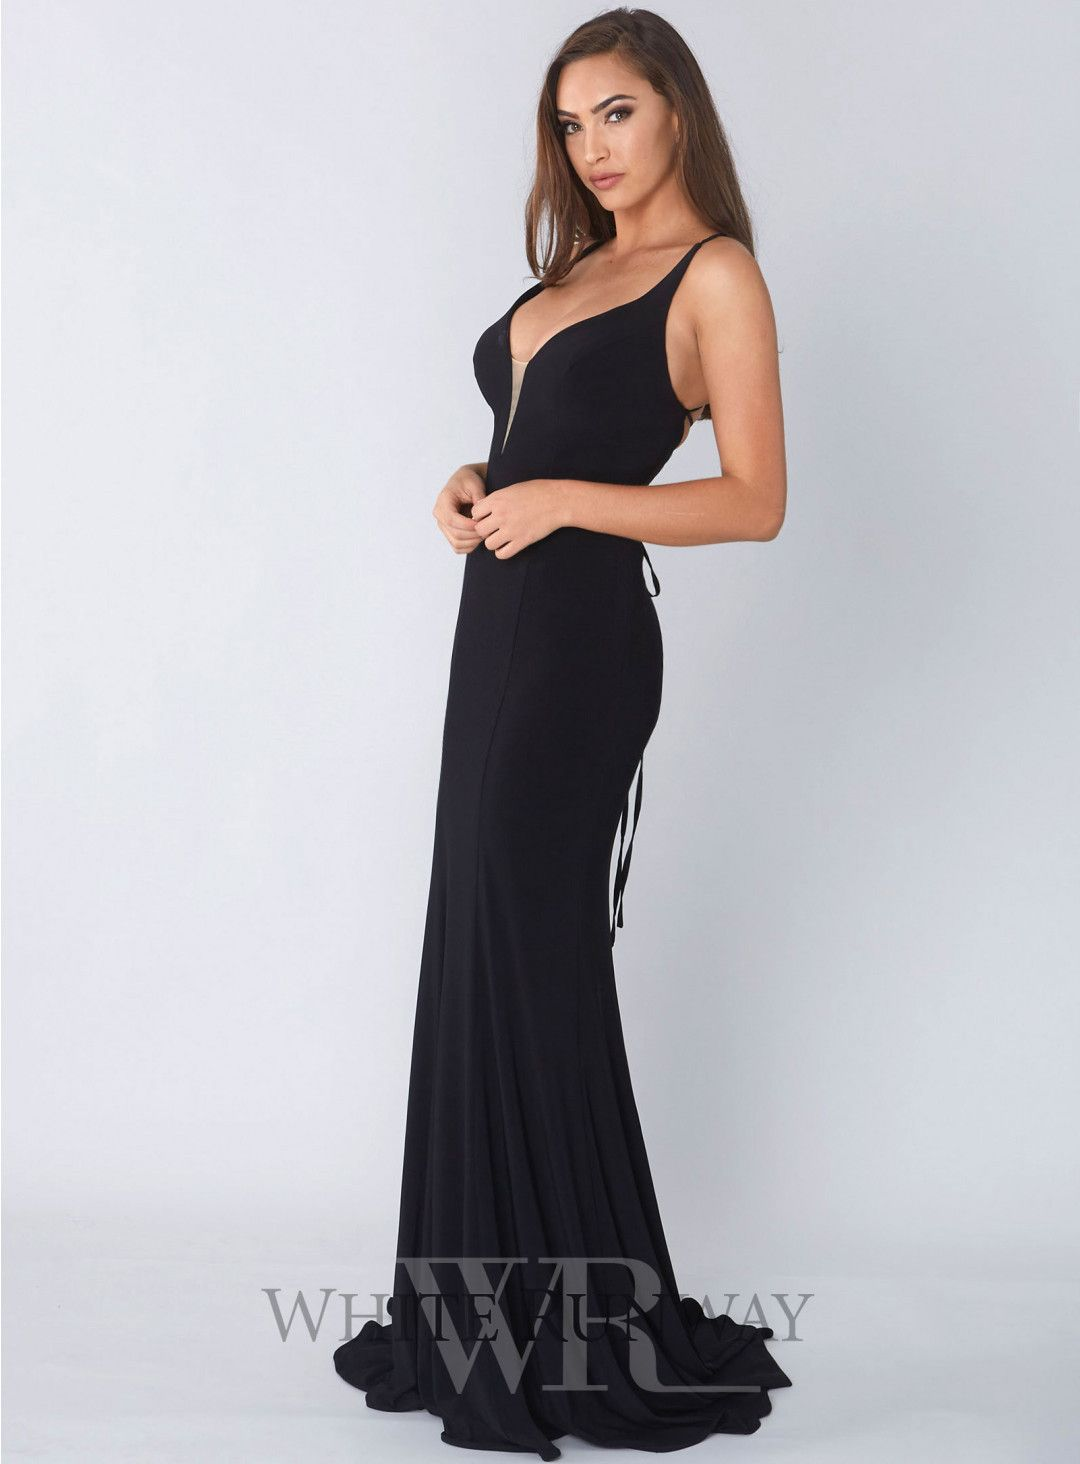 6a8a8e5c3a Matea Gown. A stunning full length dress by Tinaholy. A plunge gown with  mesh on the front and a low back with criss-cross detailing.